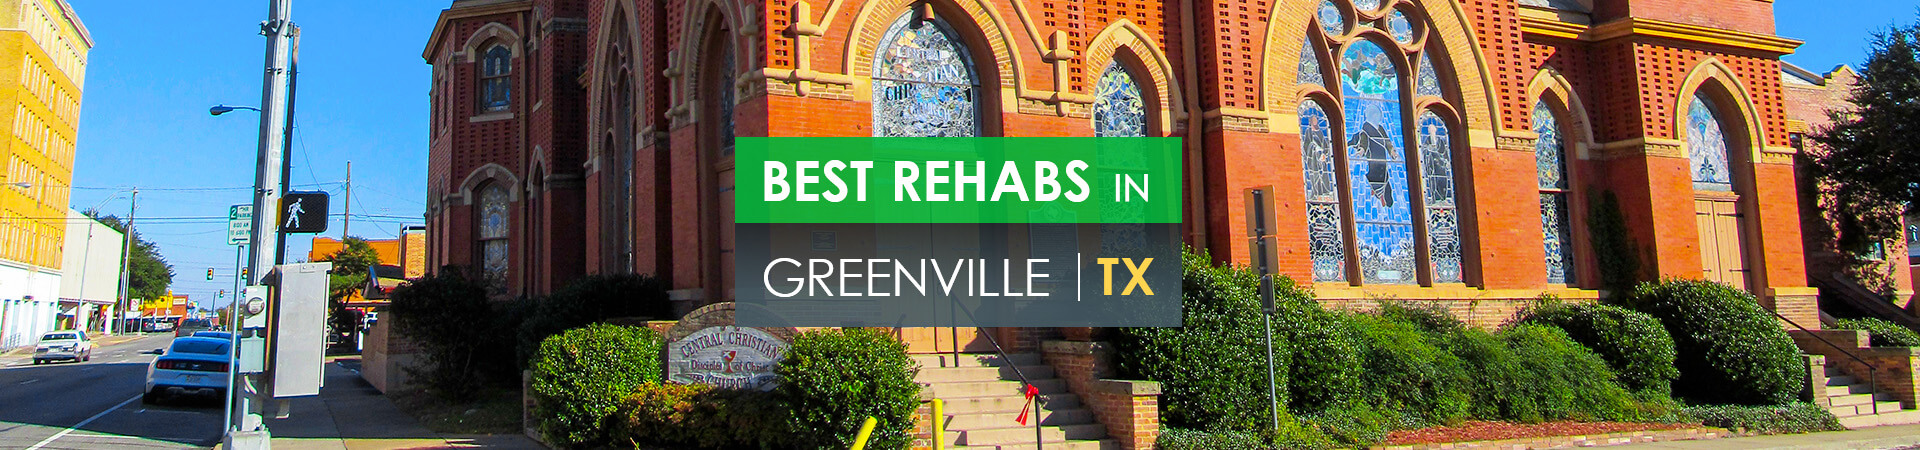 Best rehabs in Greenville, TX